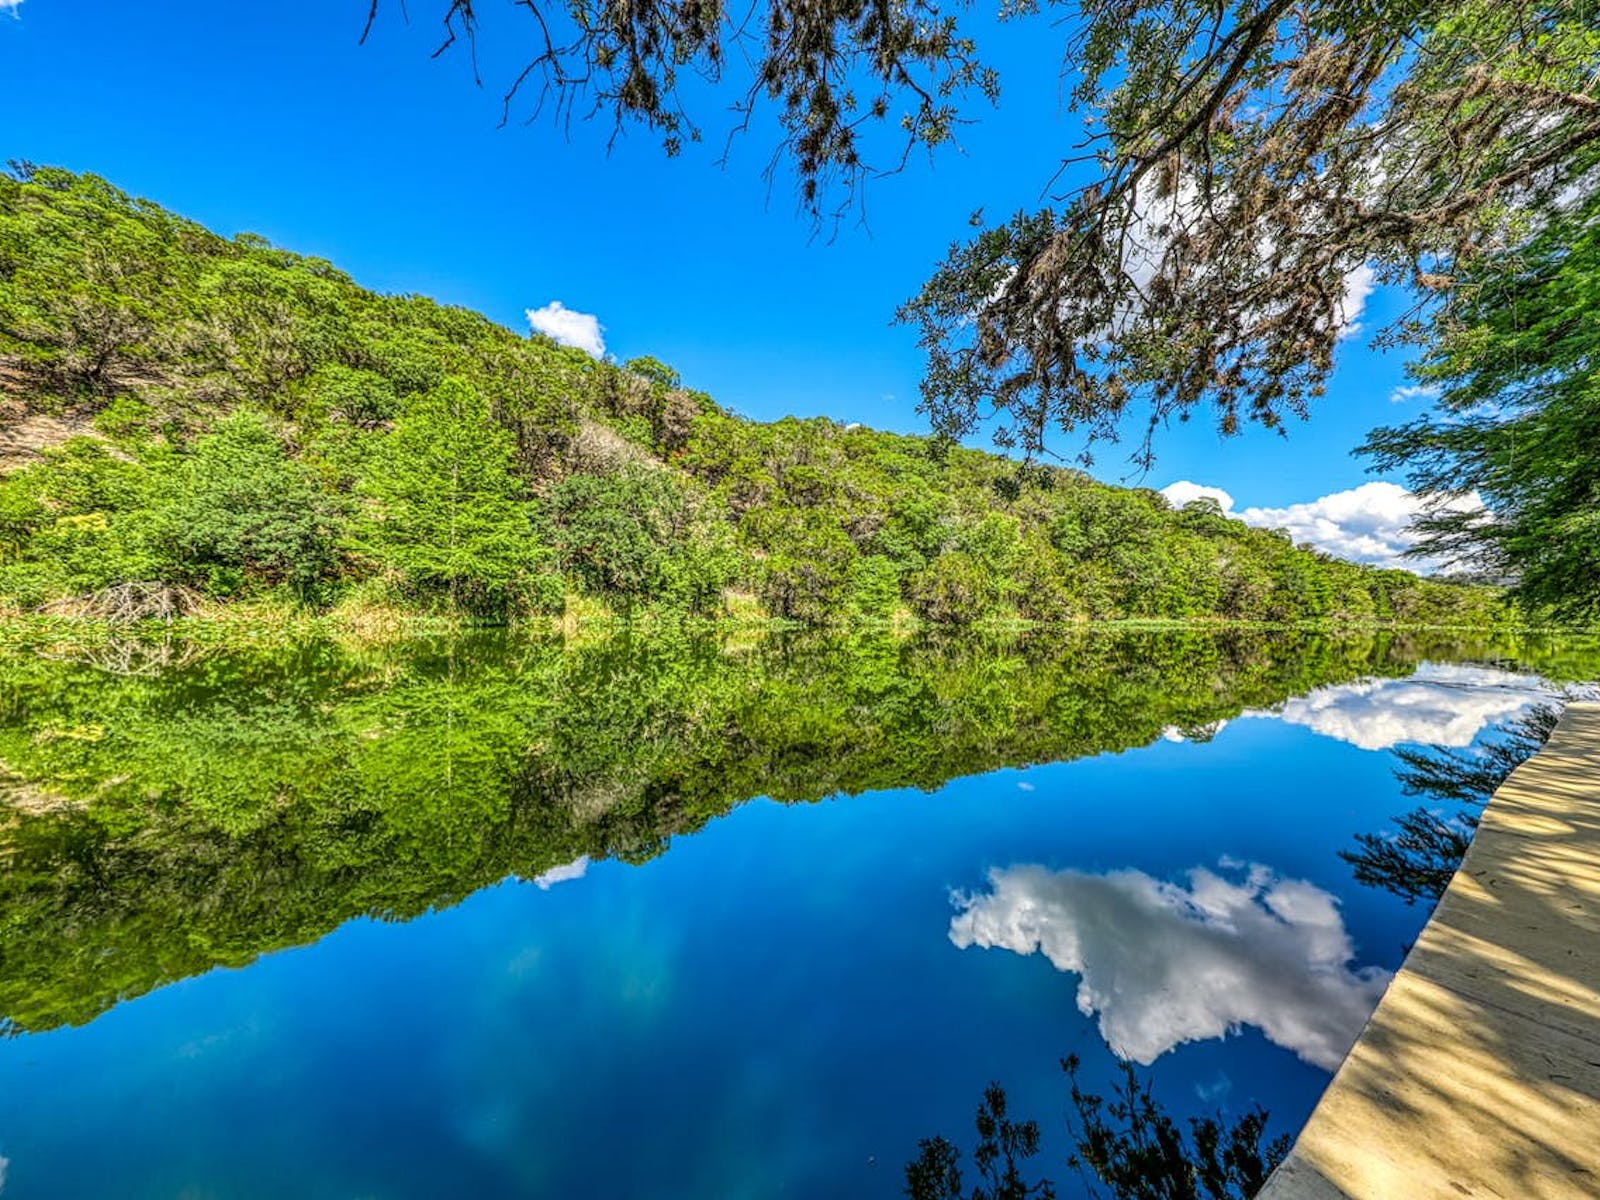 Blue sky and clouds reflected in a river